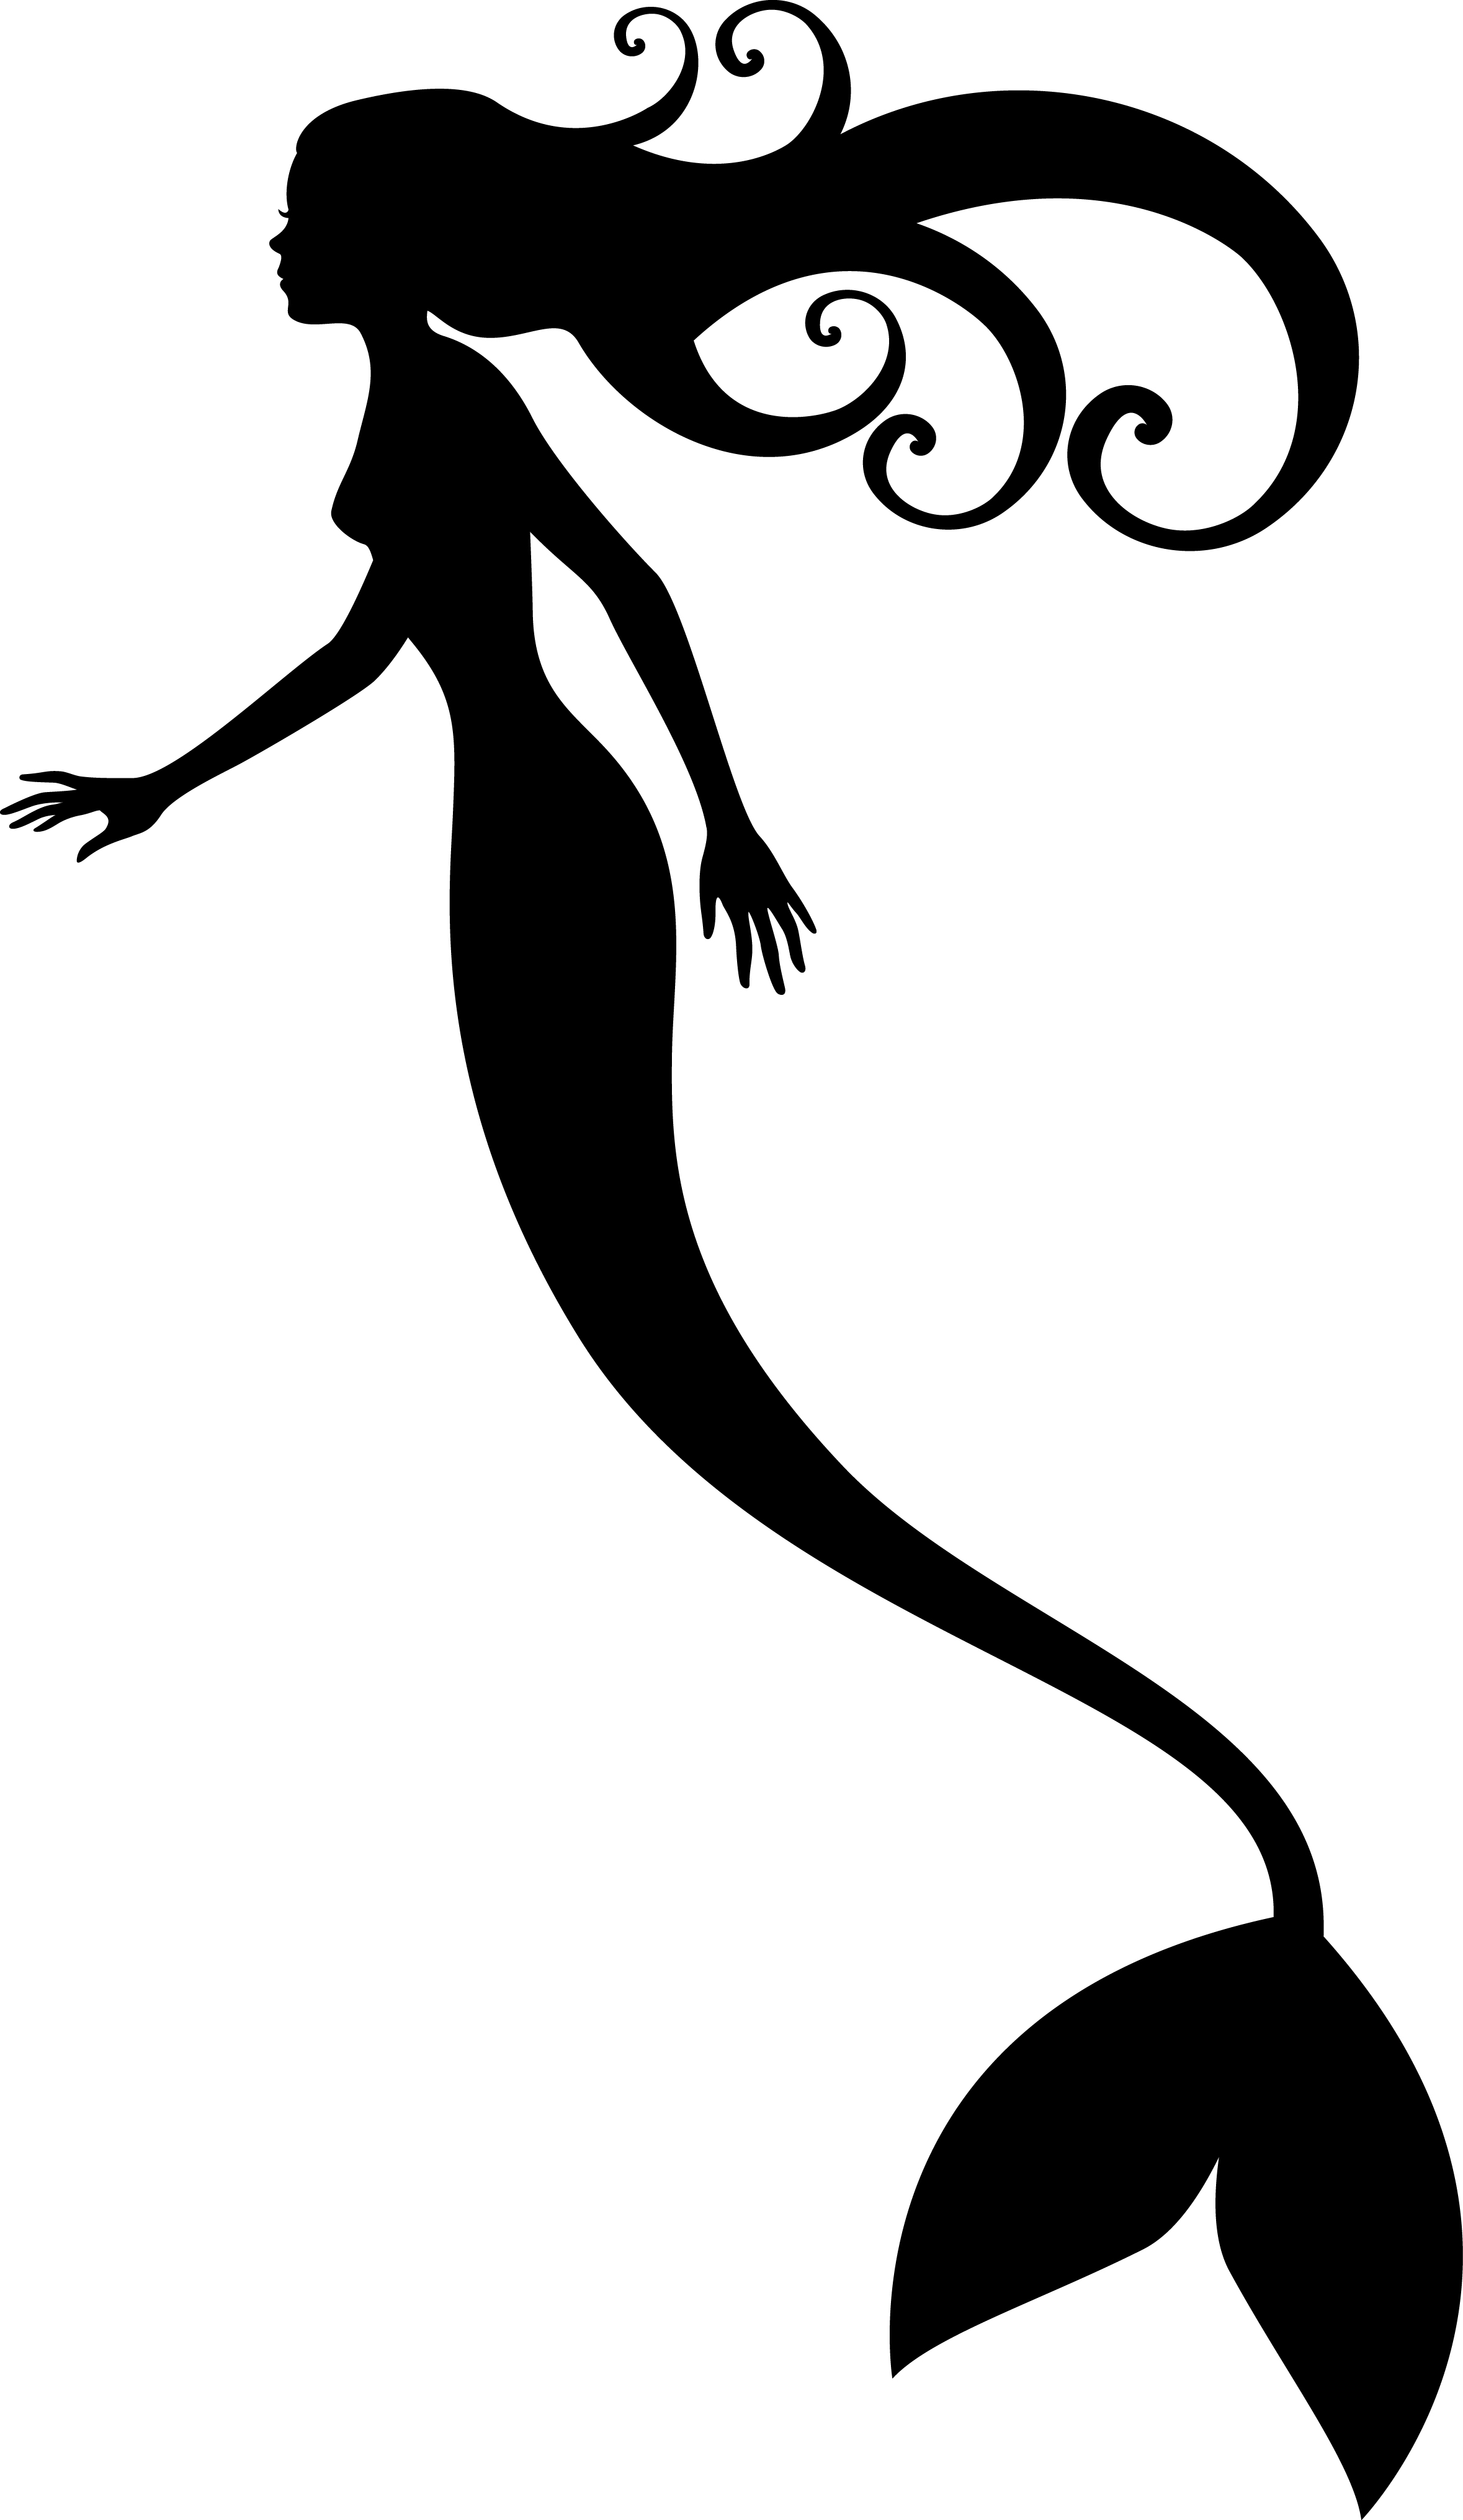 2358x4063 Mermaid Black And White Mermaid Clipart Black And White Outline